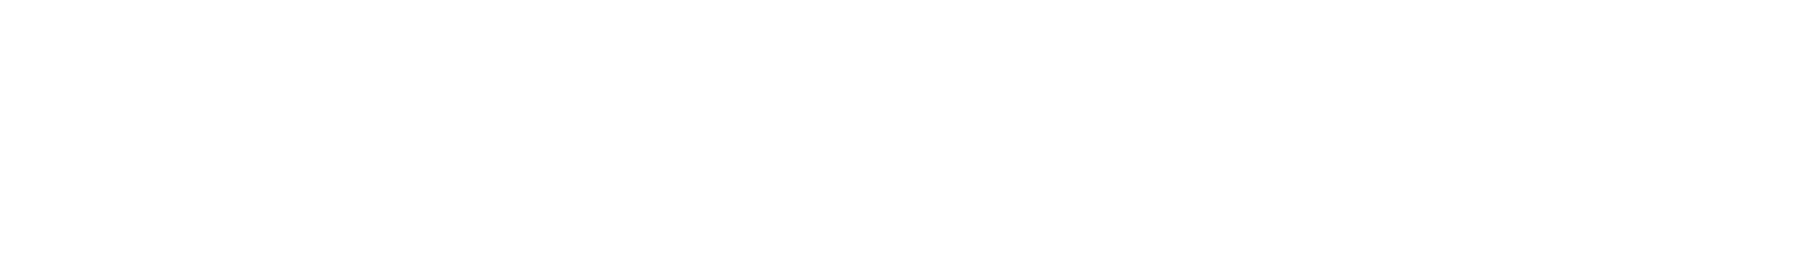 snare 11